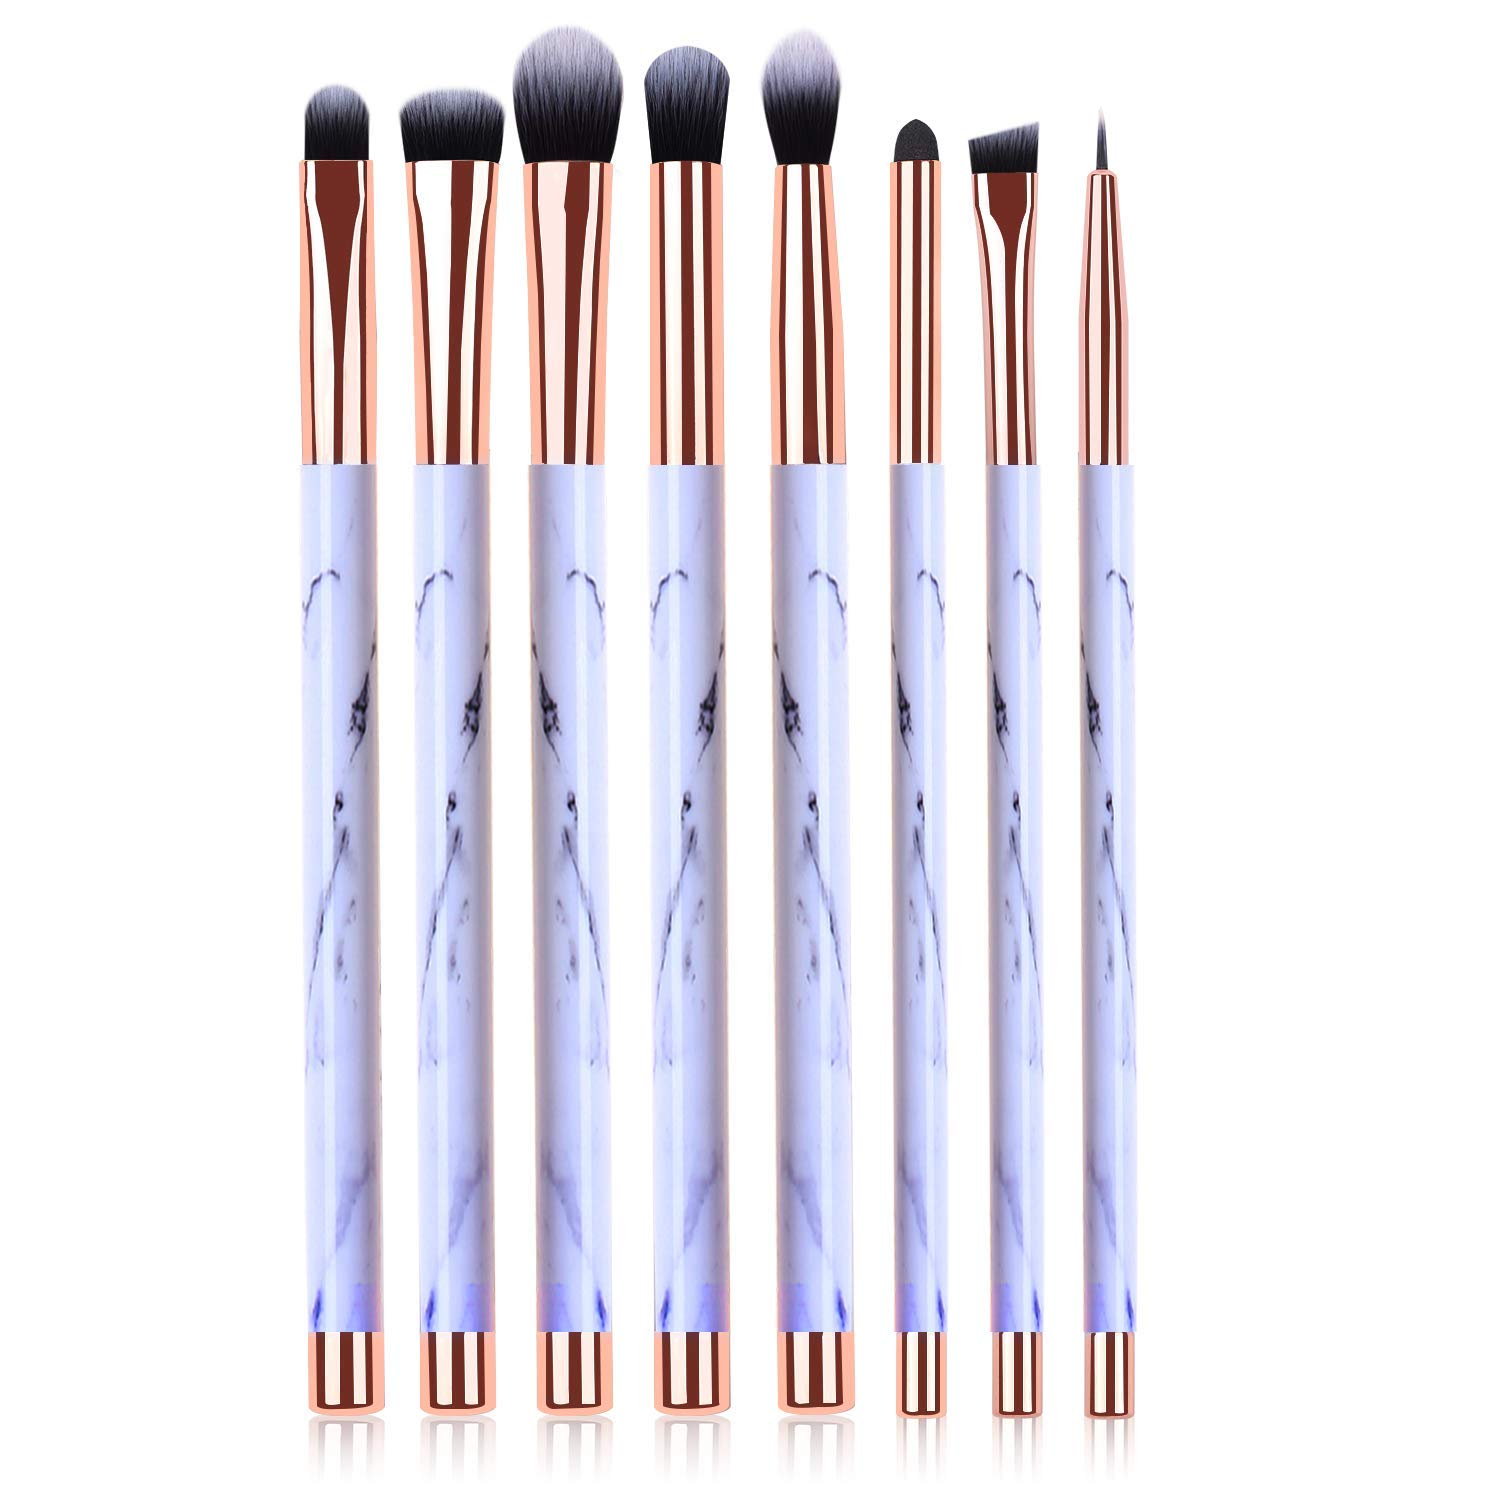 Makeup Brushes, 8pcs Marble Eye Makeup Brush Set for Premium Synthetic Eeyshadow Eyebrow Eyeliner Blending Concealer Contour Make Up Brushes Kit Real Perfection